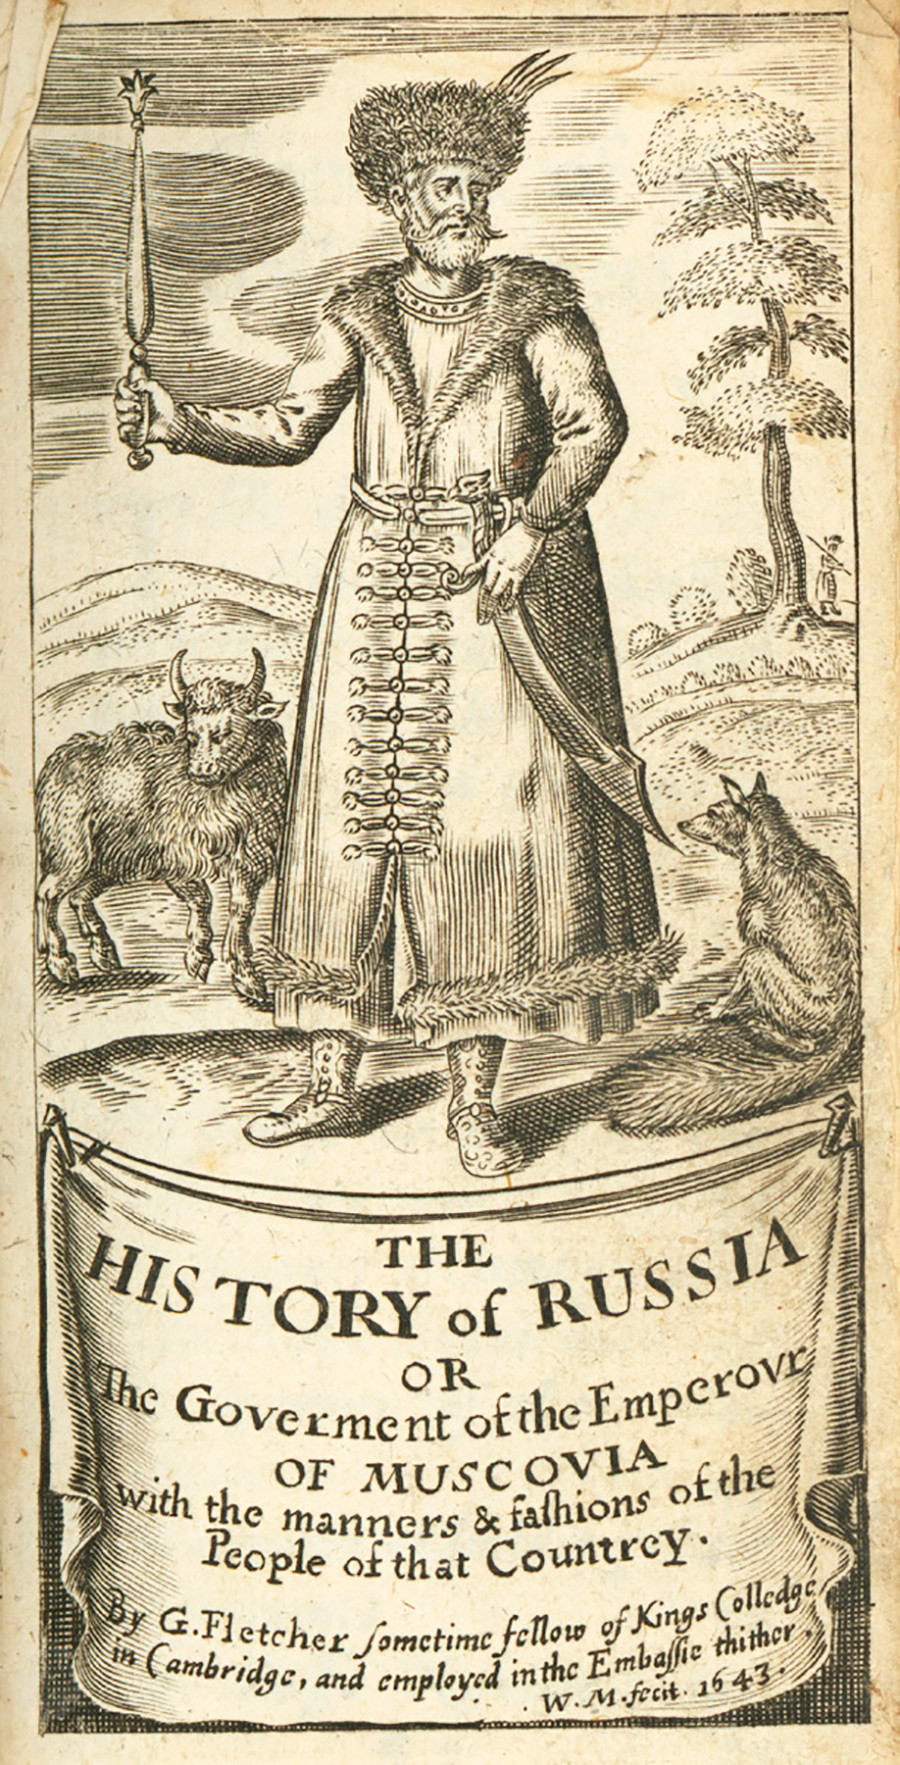 Giles Fletcher 'The history of Russia' titlepage, 2nd Ed. (1643).